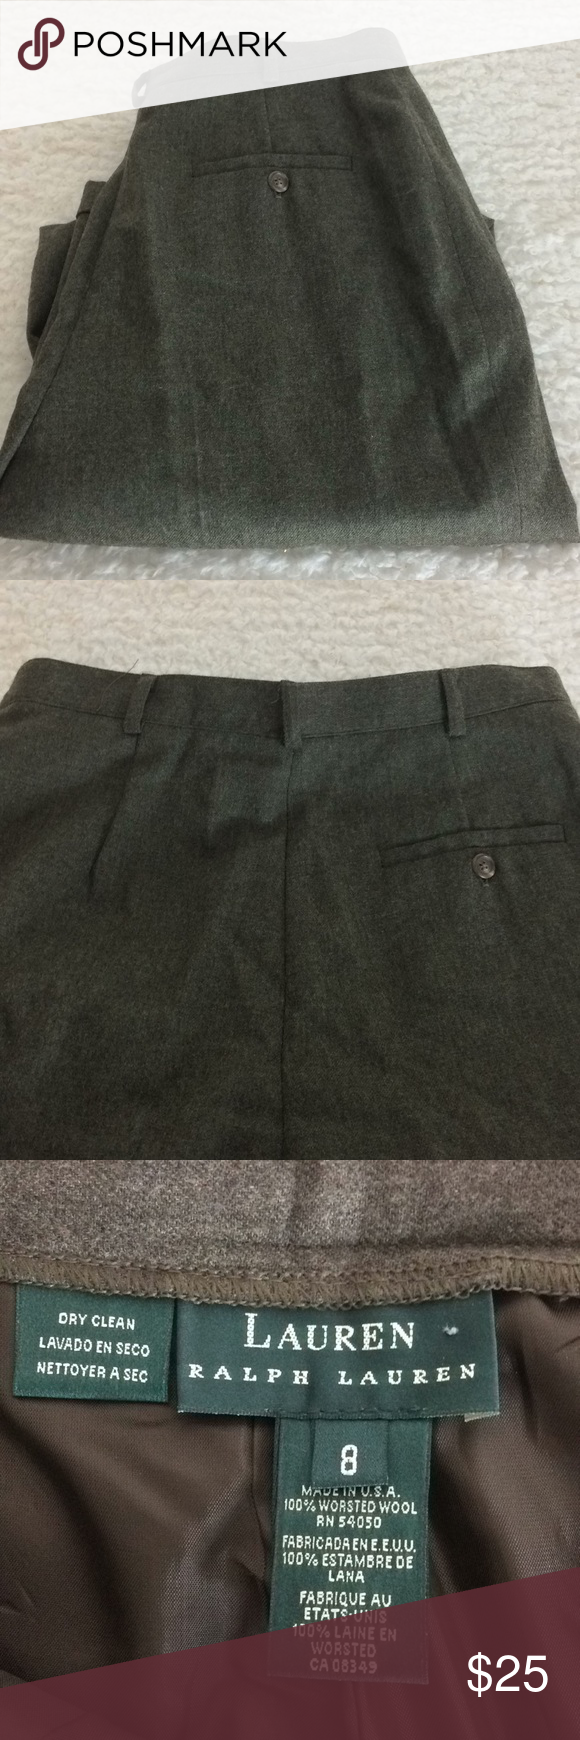 Women's Clothing Modest Ralph Lauren Womens Gray Dress Pants 100% Worsted Wool Size 14 Pleated Cuffed Buy Now Pants